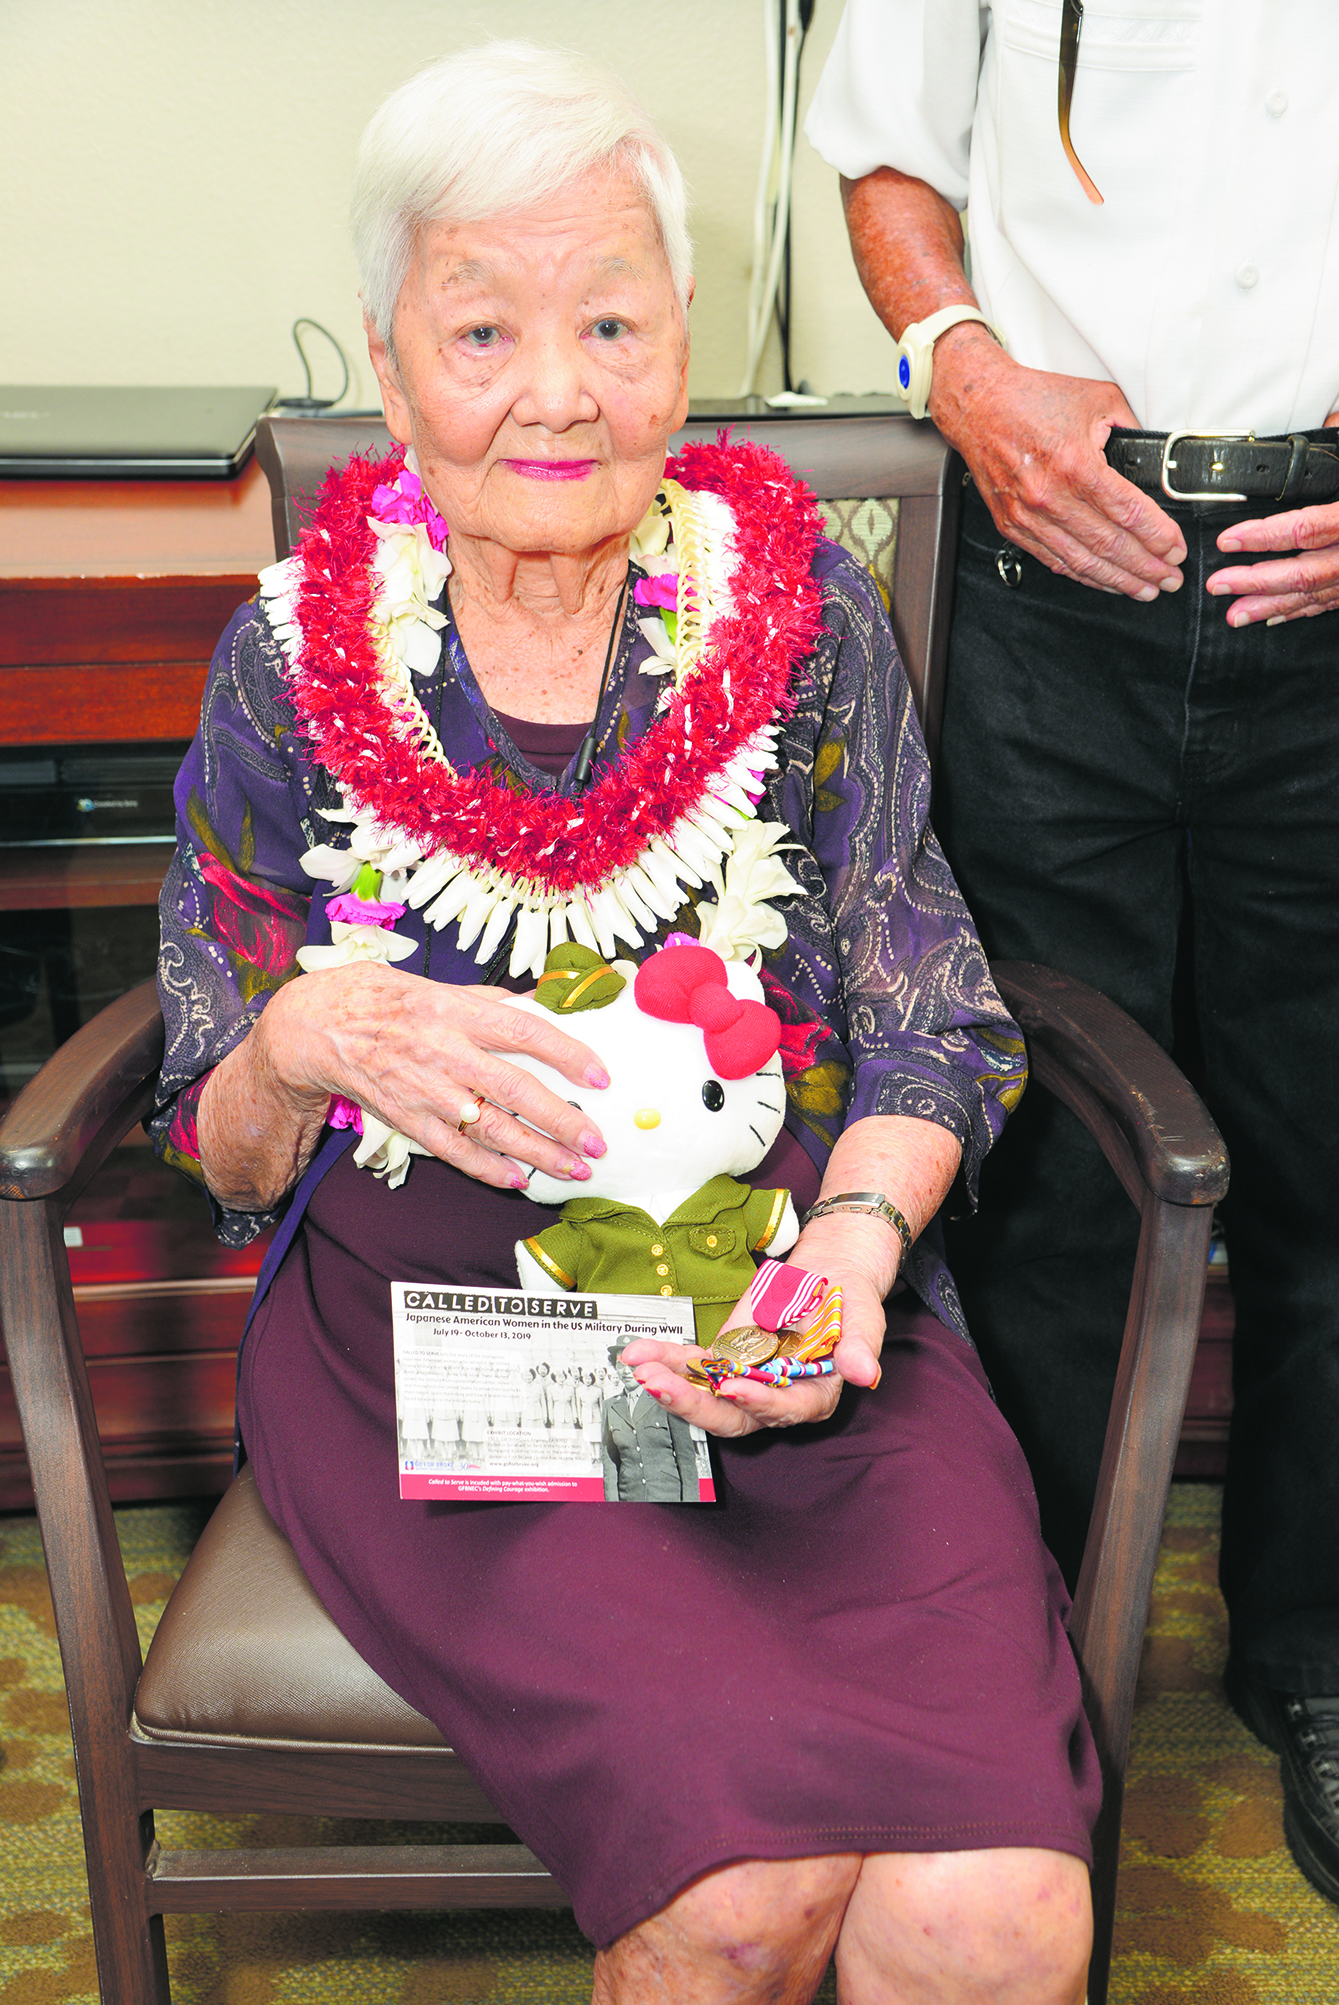 """Chito Isonaga holds her medals and a Hello Kitty WAC doll that was specially commissioned by the Go For Broke National Education Center for its """"Called to Serve"""" exhibit on the Women's Army Corps. It was presented to her by 100th Infantry Battalion Veterans president Ann Kabasawa. (Photo by Clyde Sugimoto)"""